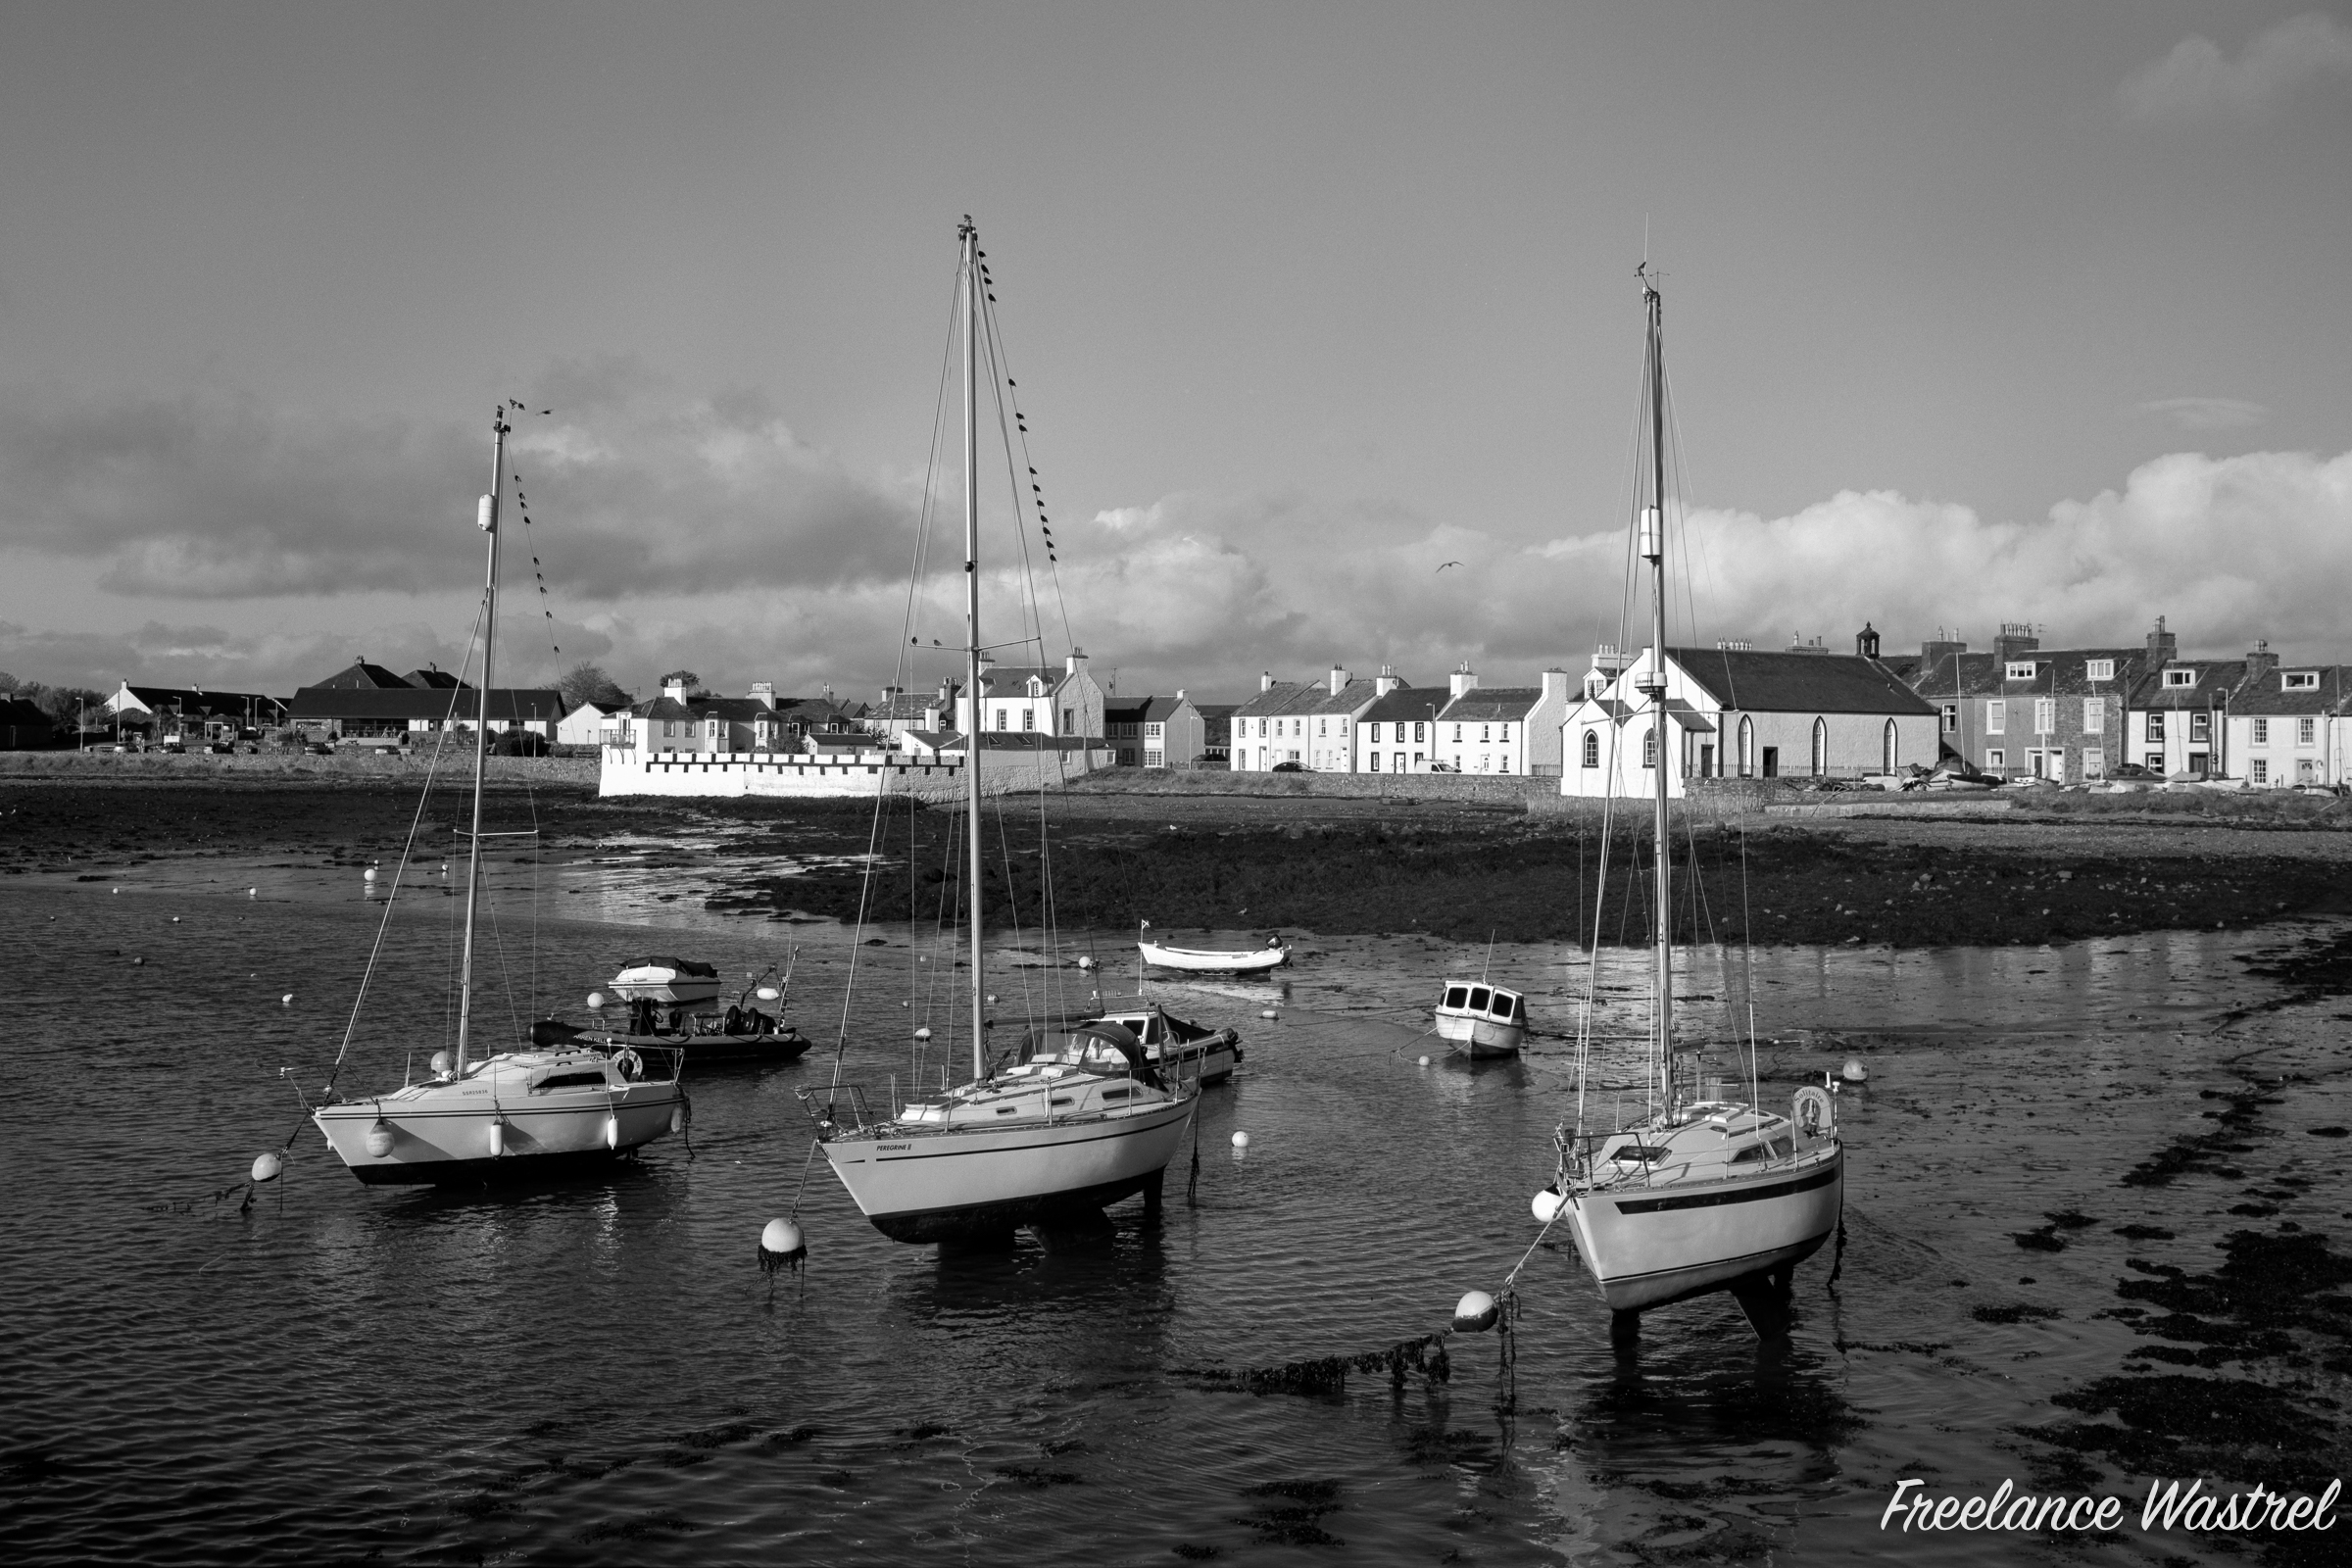 Yachts at rest, Isle of Whithorn